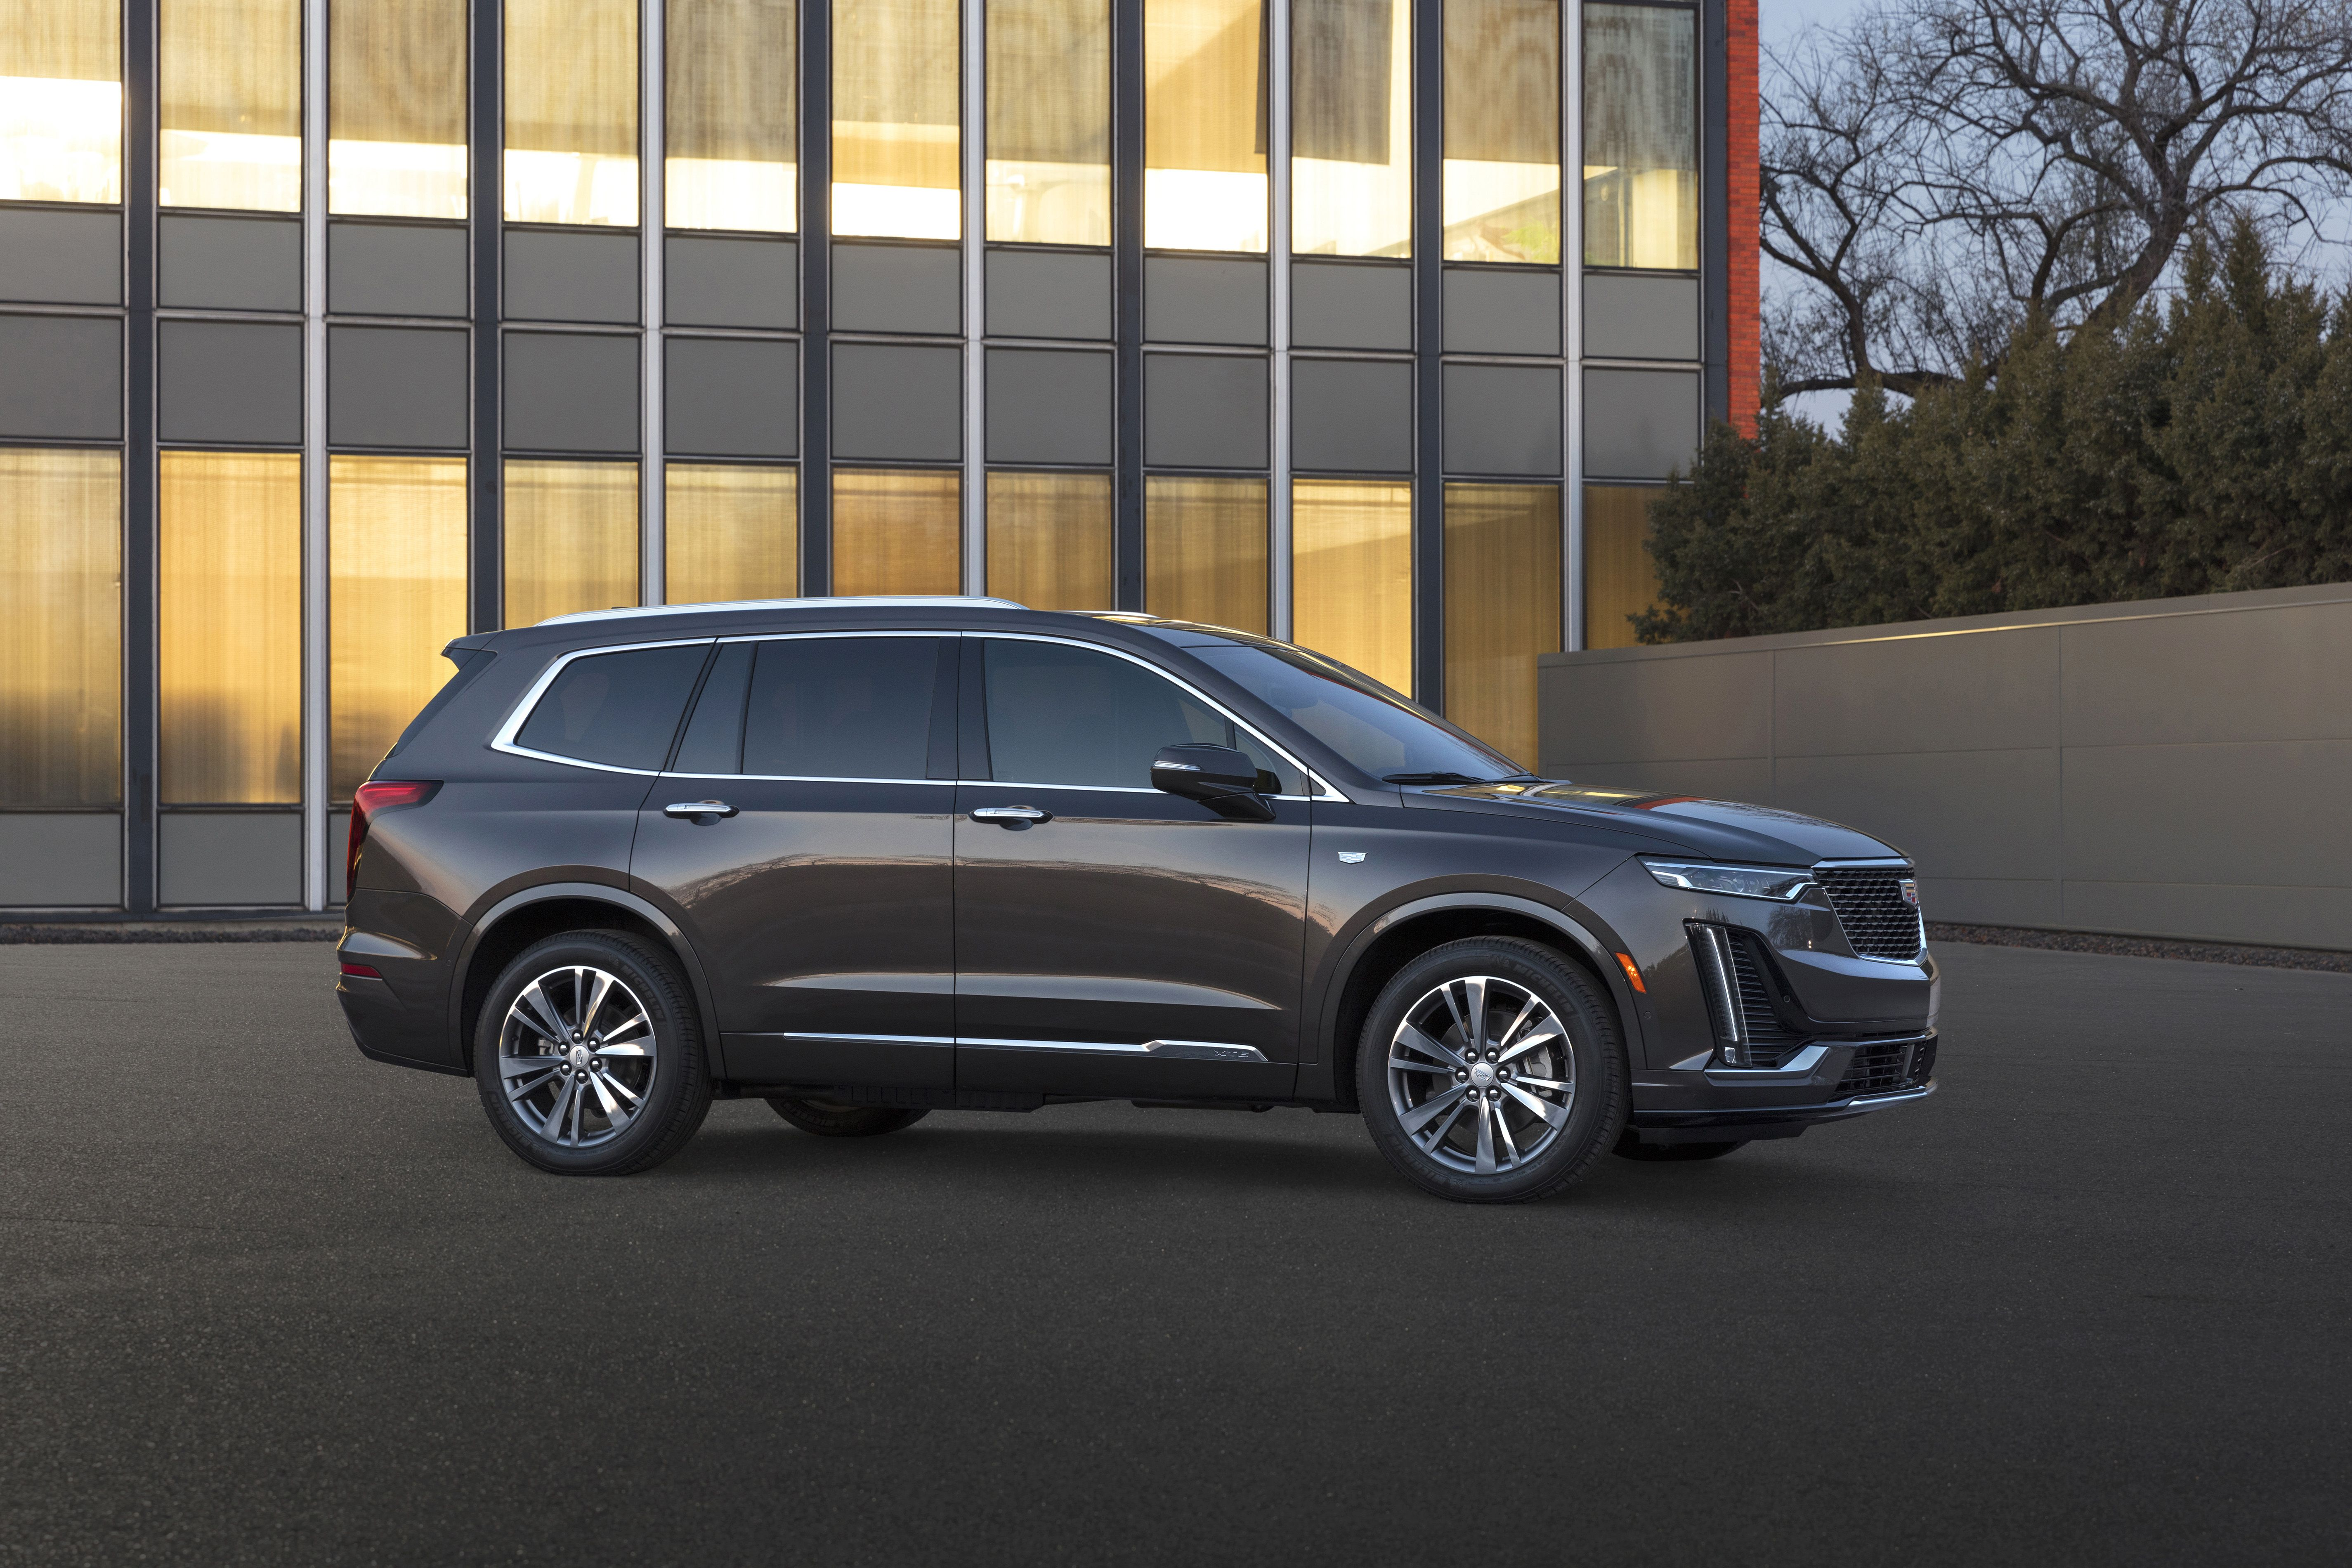 2020 Cadillac Xt5 Review Interior Price Specs >> 2020 Cadillac Xt6 2020 Cadillac Xt6 Review Pricing And Specs